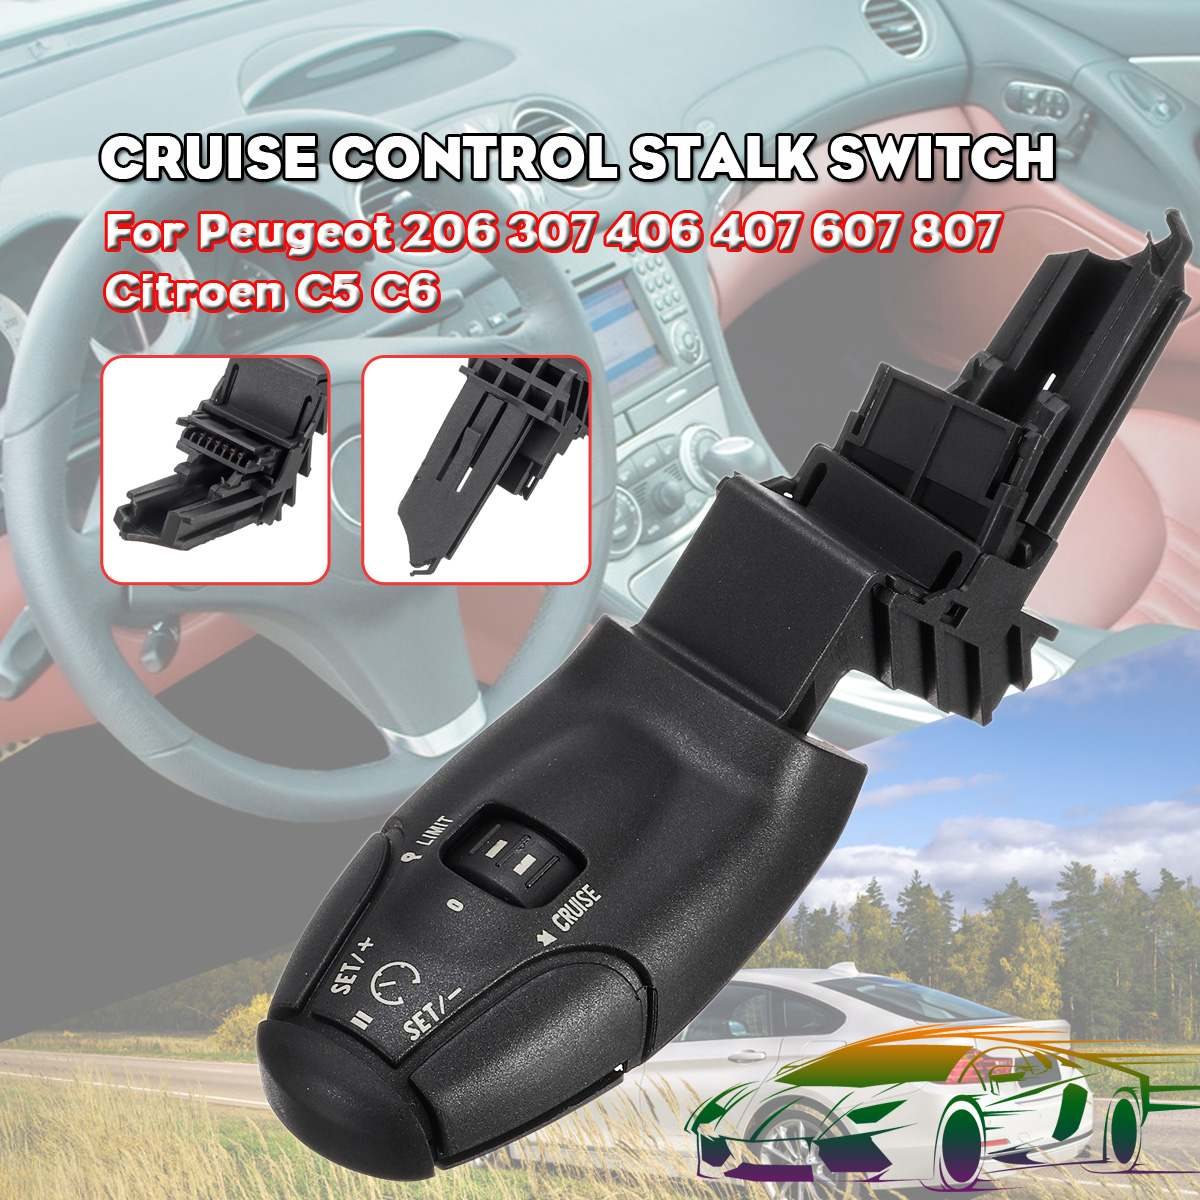 Cruise Control Switch Car Switch For <font><b>Peugeot</b></font> 206 3008 307 308 <font><b>406</b></font> 407 607 807 For Citroen C5 C6 C8 Car image